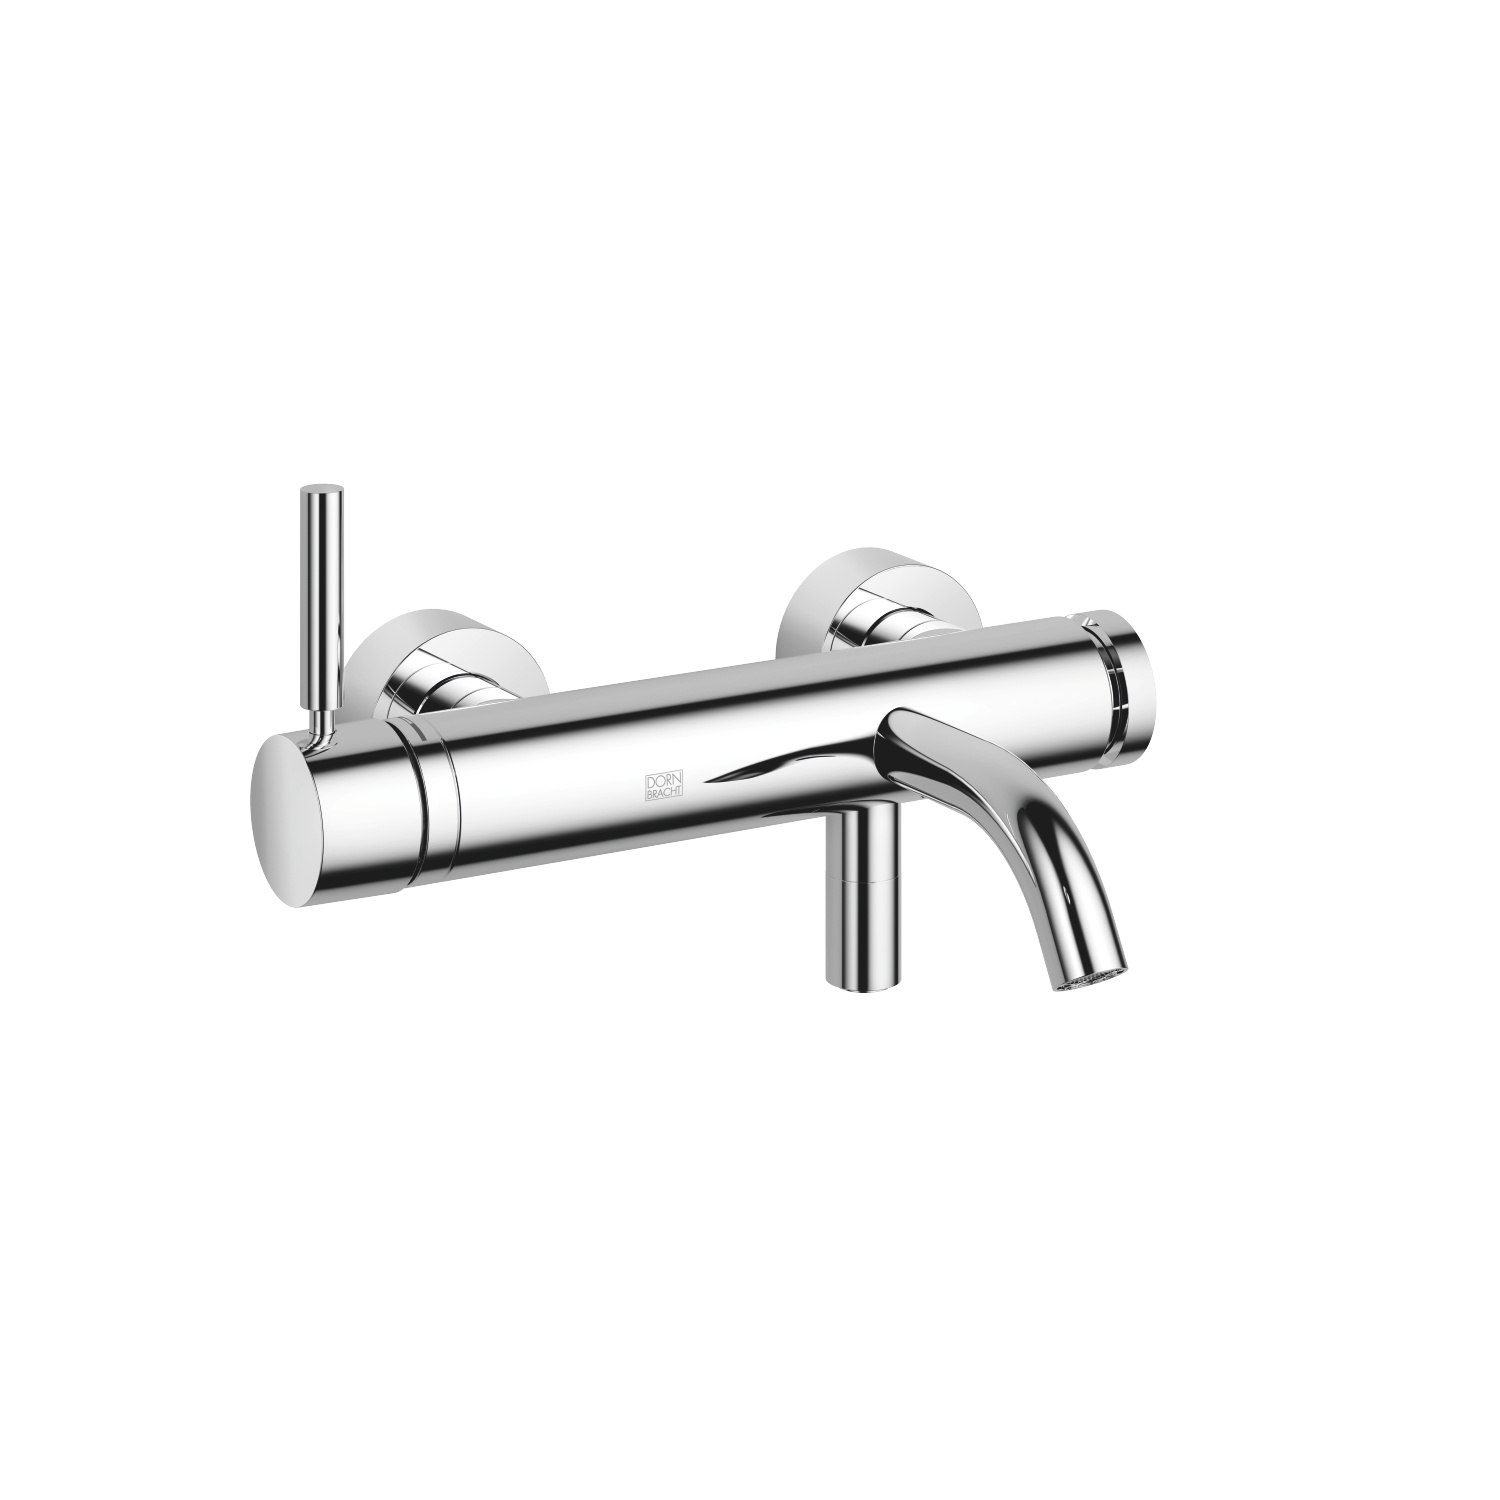 Single-lever bath mixer for wall mounting without shower set - polished chrome